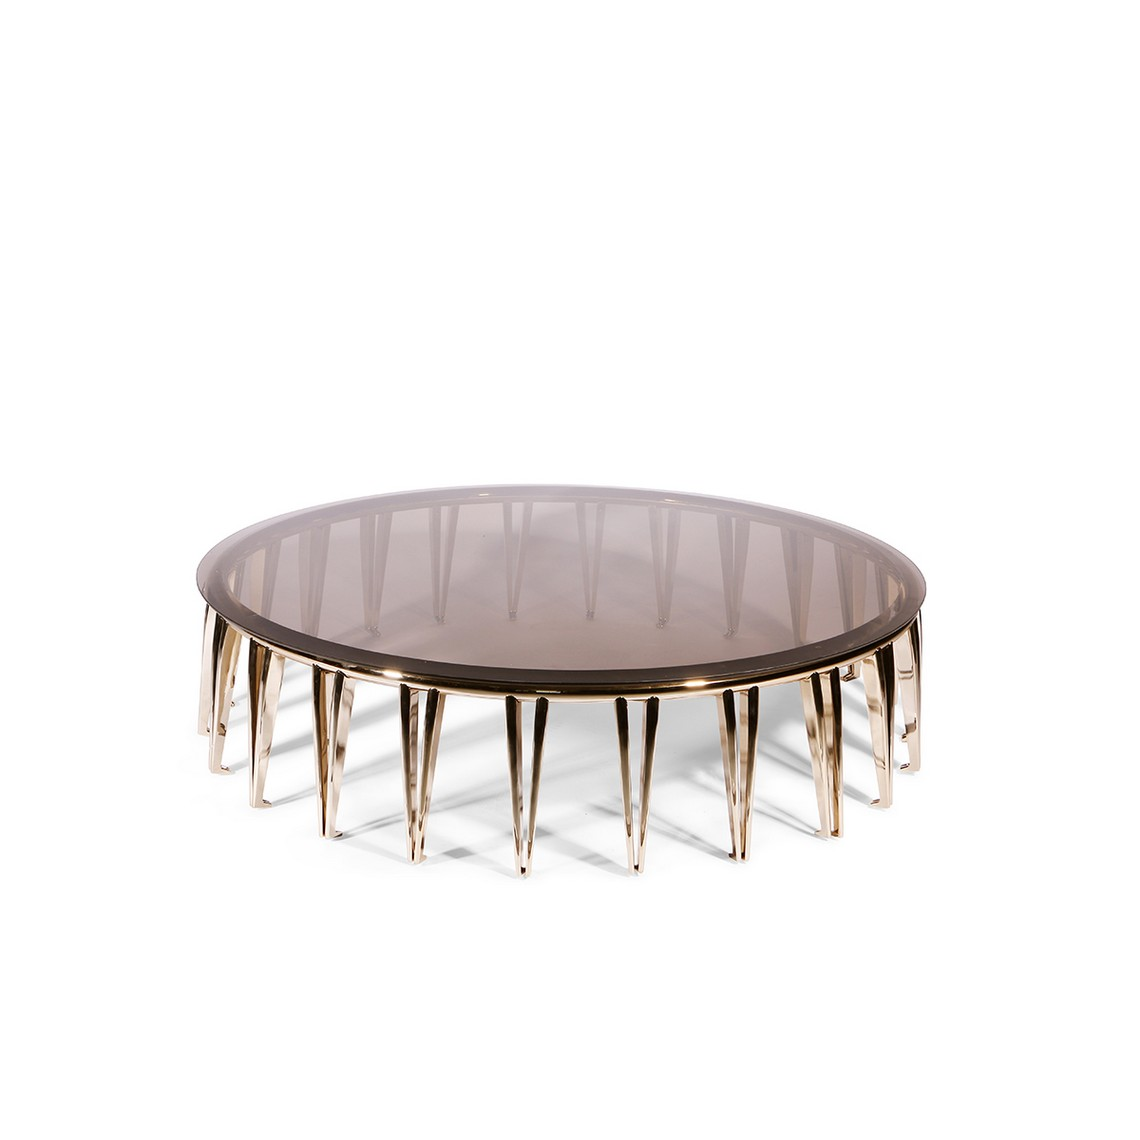 Modern Center Tables For Your Living Room living room Modern Center Tables For Your Living Room eh newson center table imagem principal